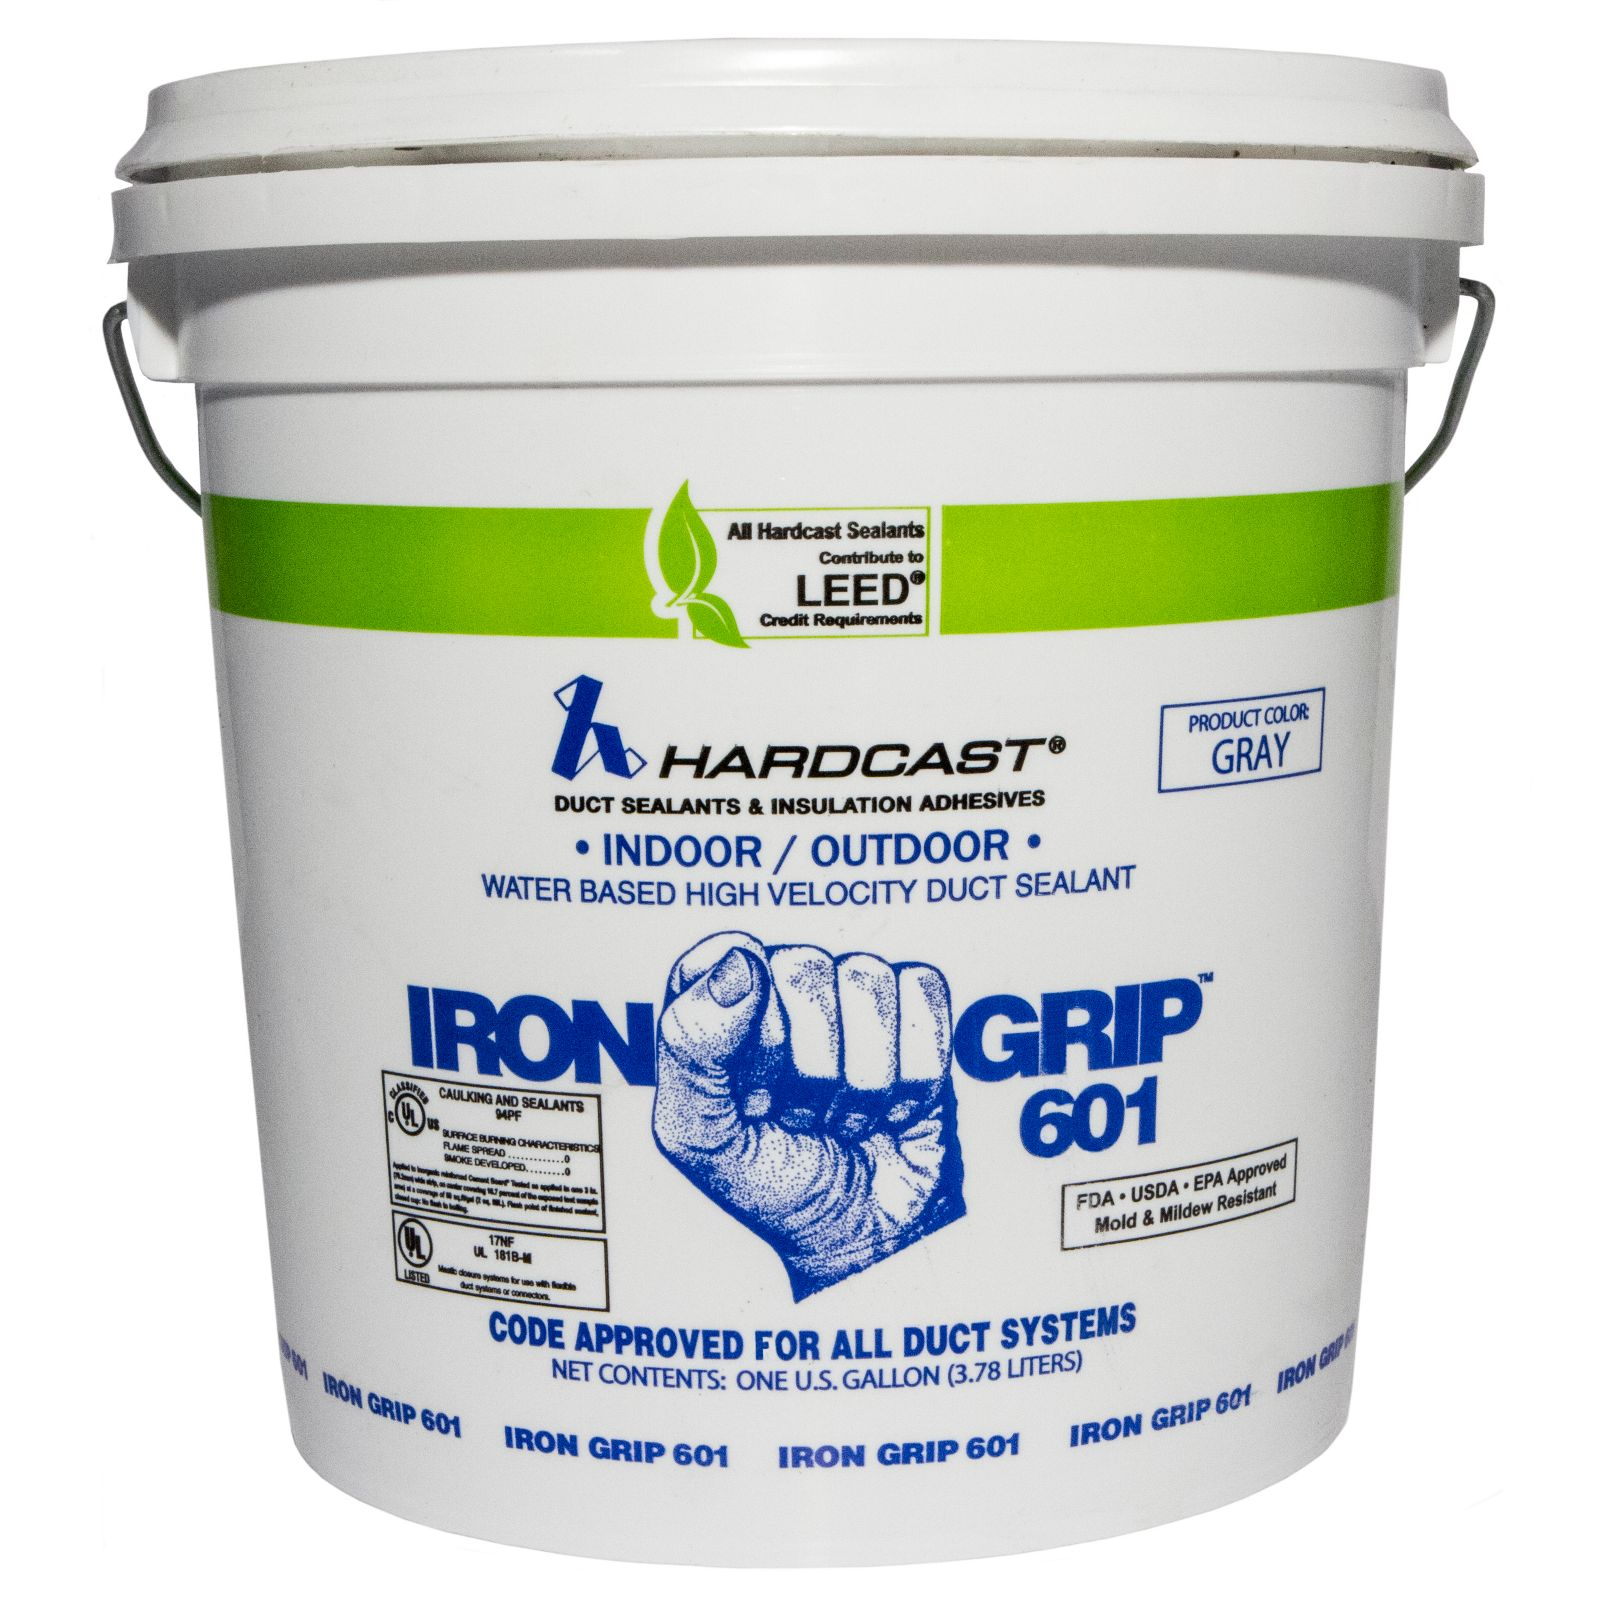 Hardcast/Carlisle 304135 - Iron-Gripa® 601 Premium Indoor/Outdoor Flexible Water Based Duct Sealant. Grey, 1 Gallon Pail